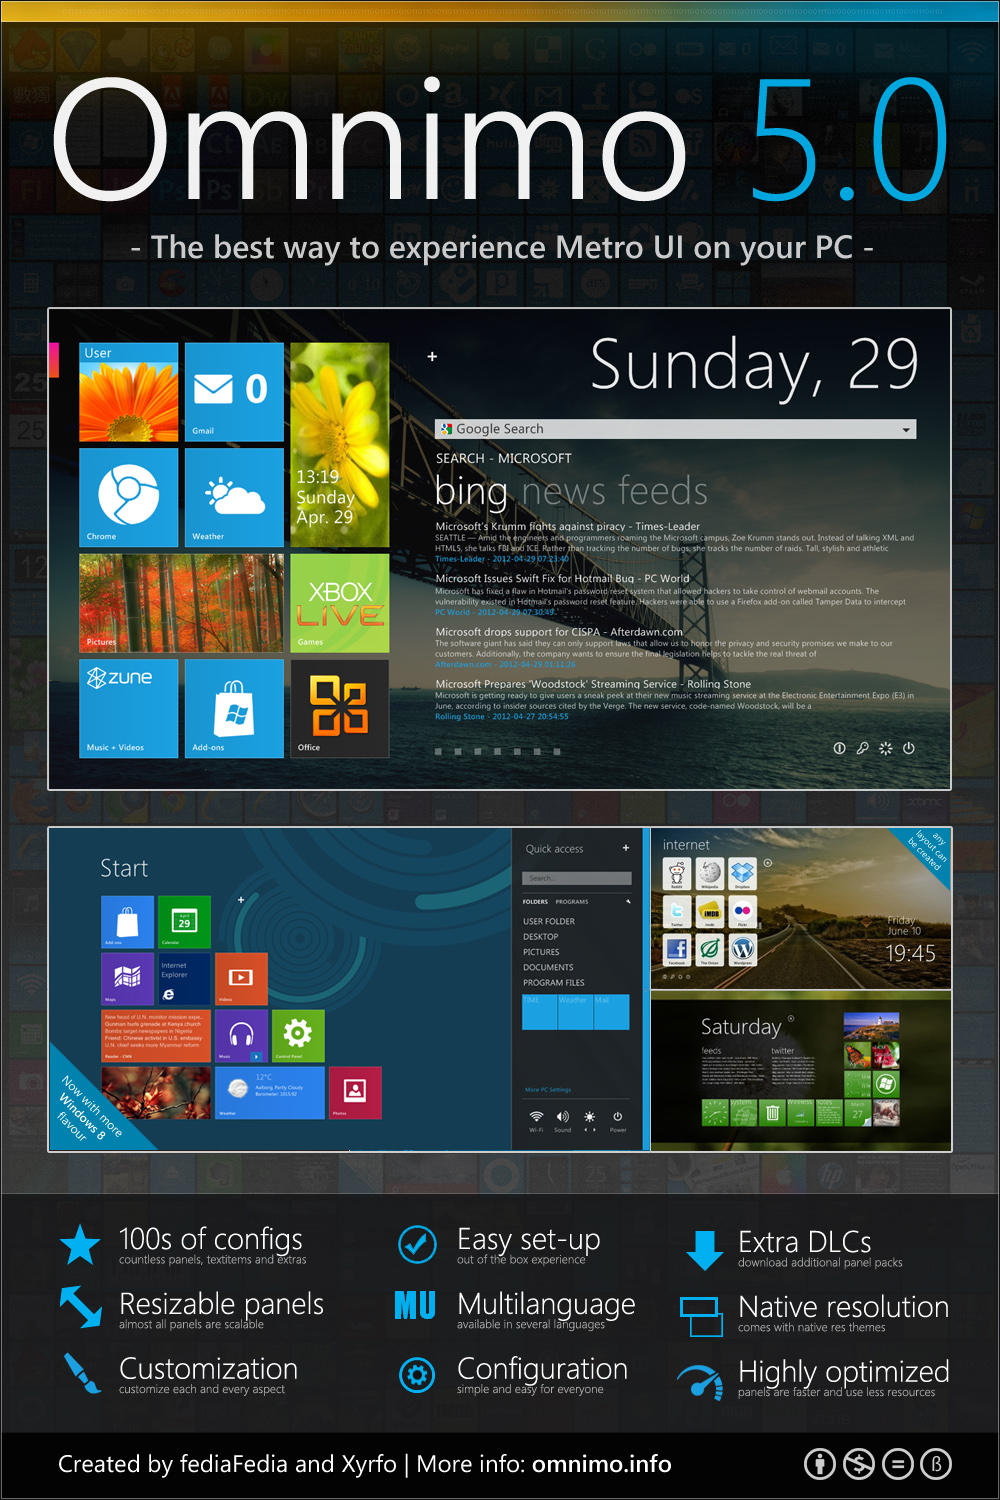 Omnimo 5.0 for Rainmeter by fediaFedia